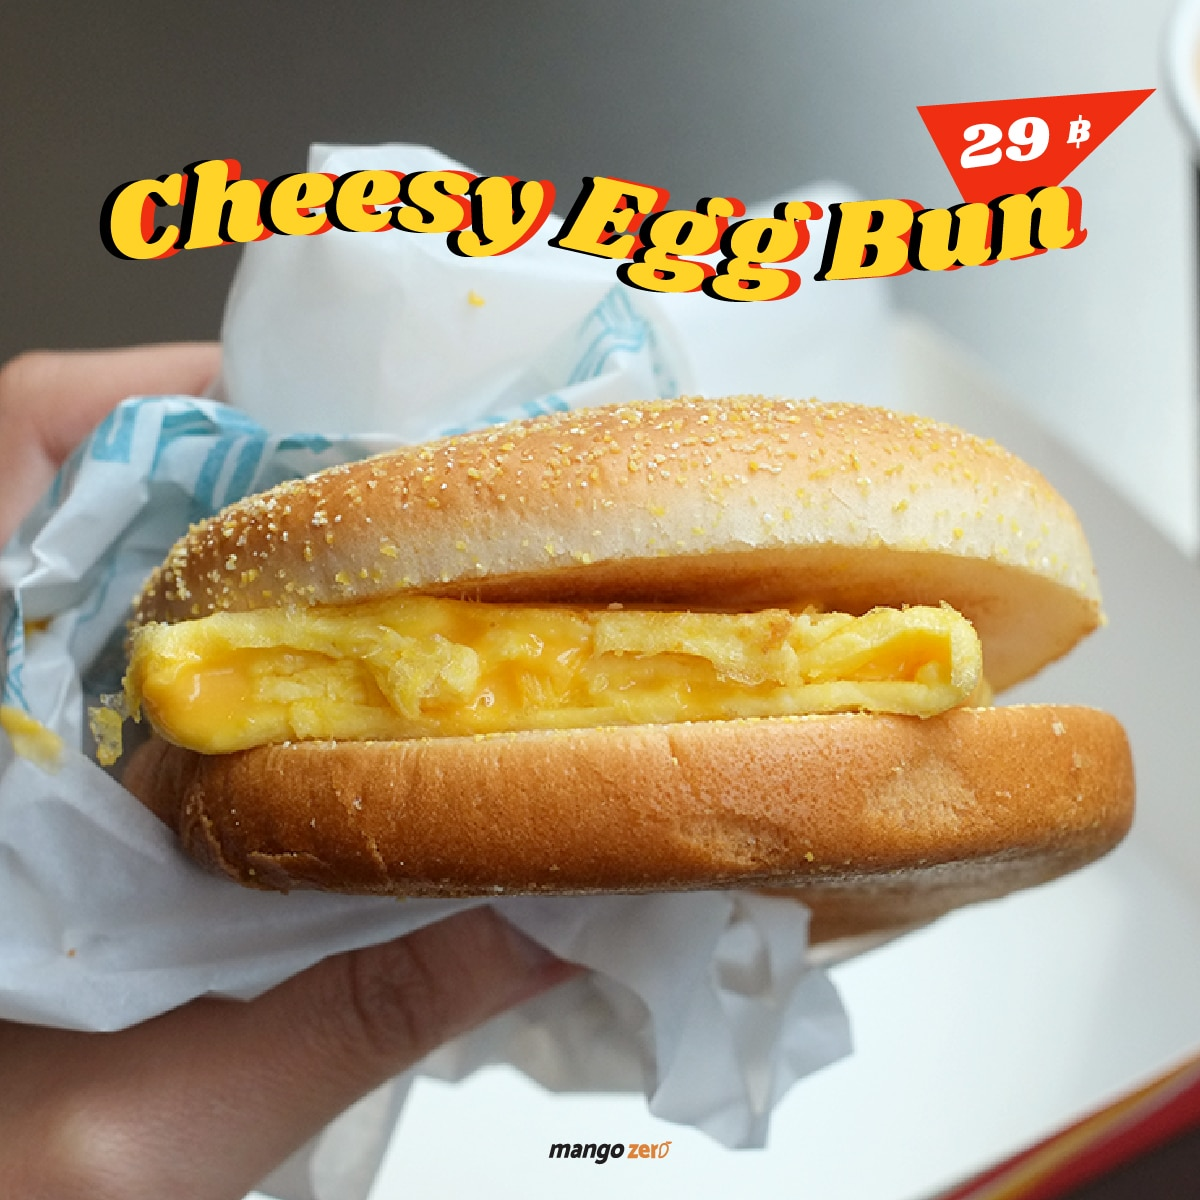 mcdonalds-cheesy-egg-bun-and-sweet-potato-desserts-02